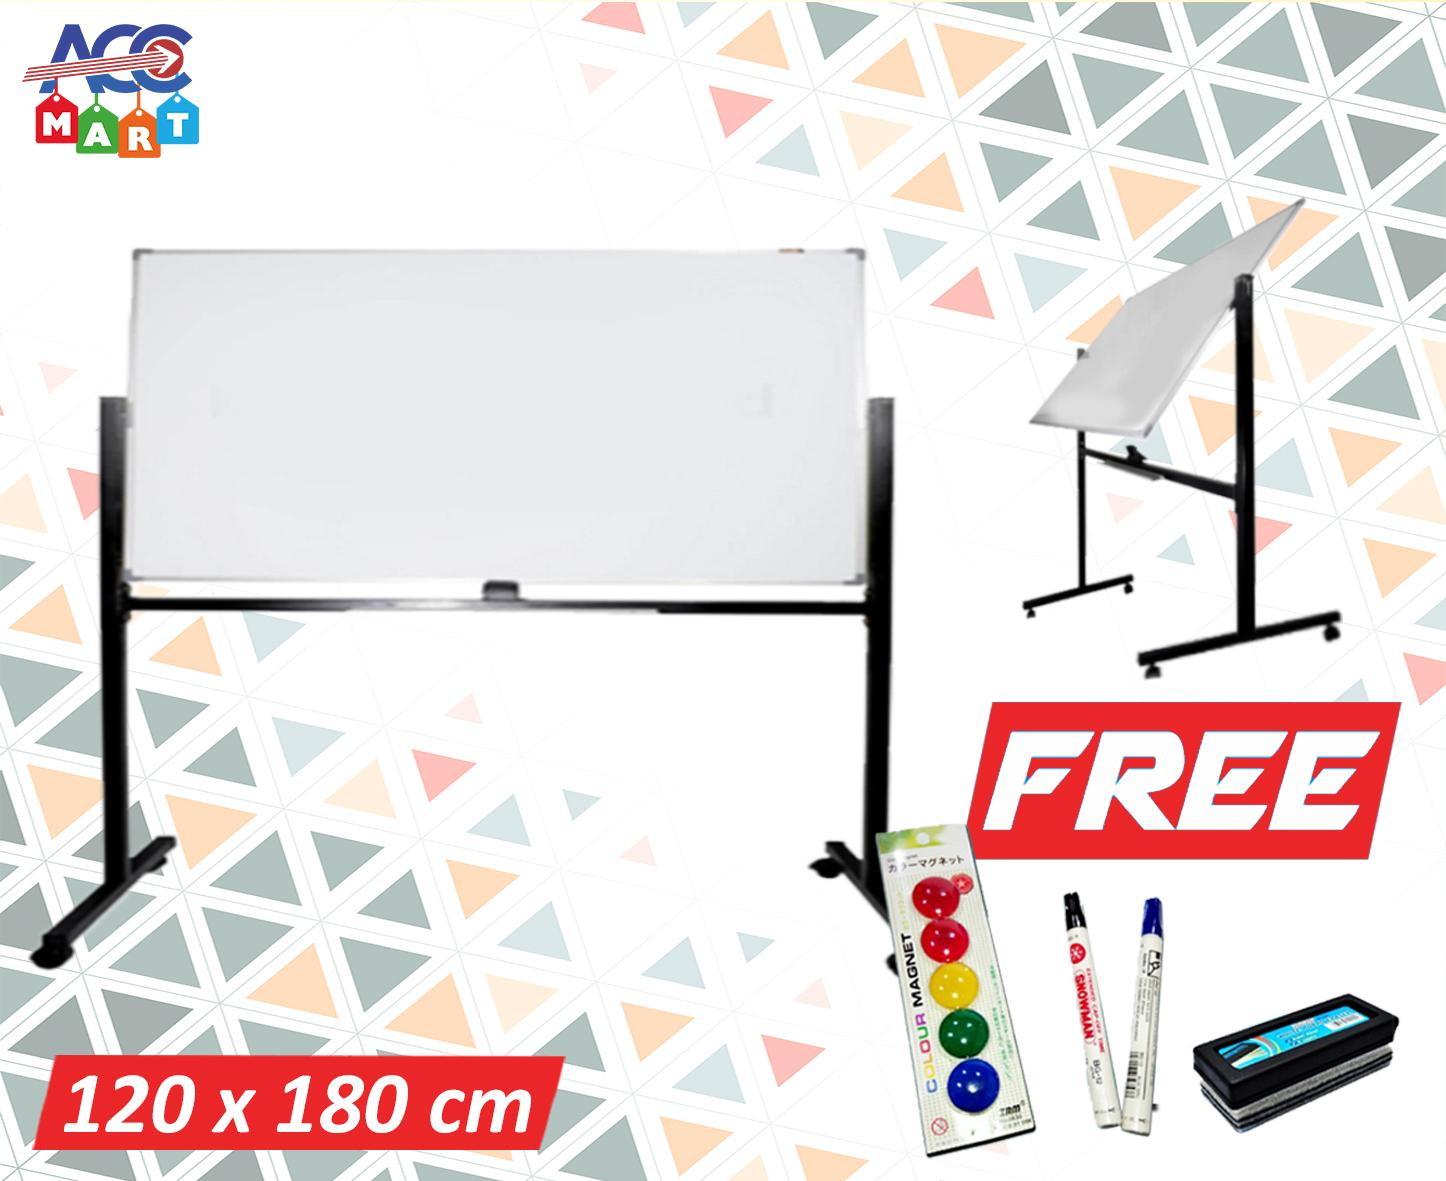 Whiteboard Keiko Double Face Stand 120x180cm Free Spidol - Penghapus & Pin Magnet By Accmart.